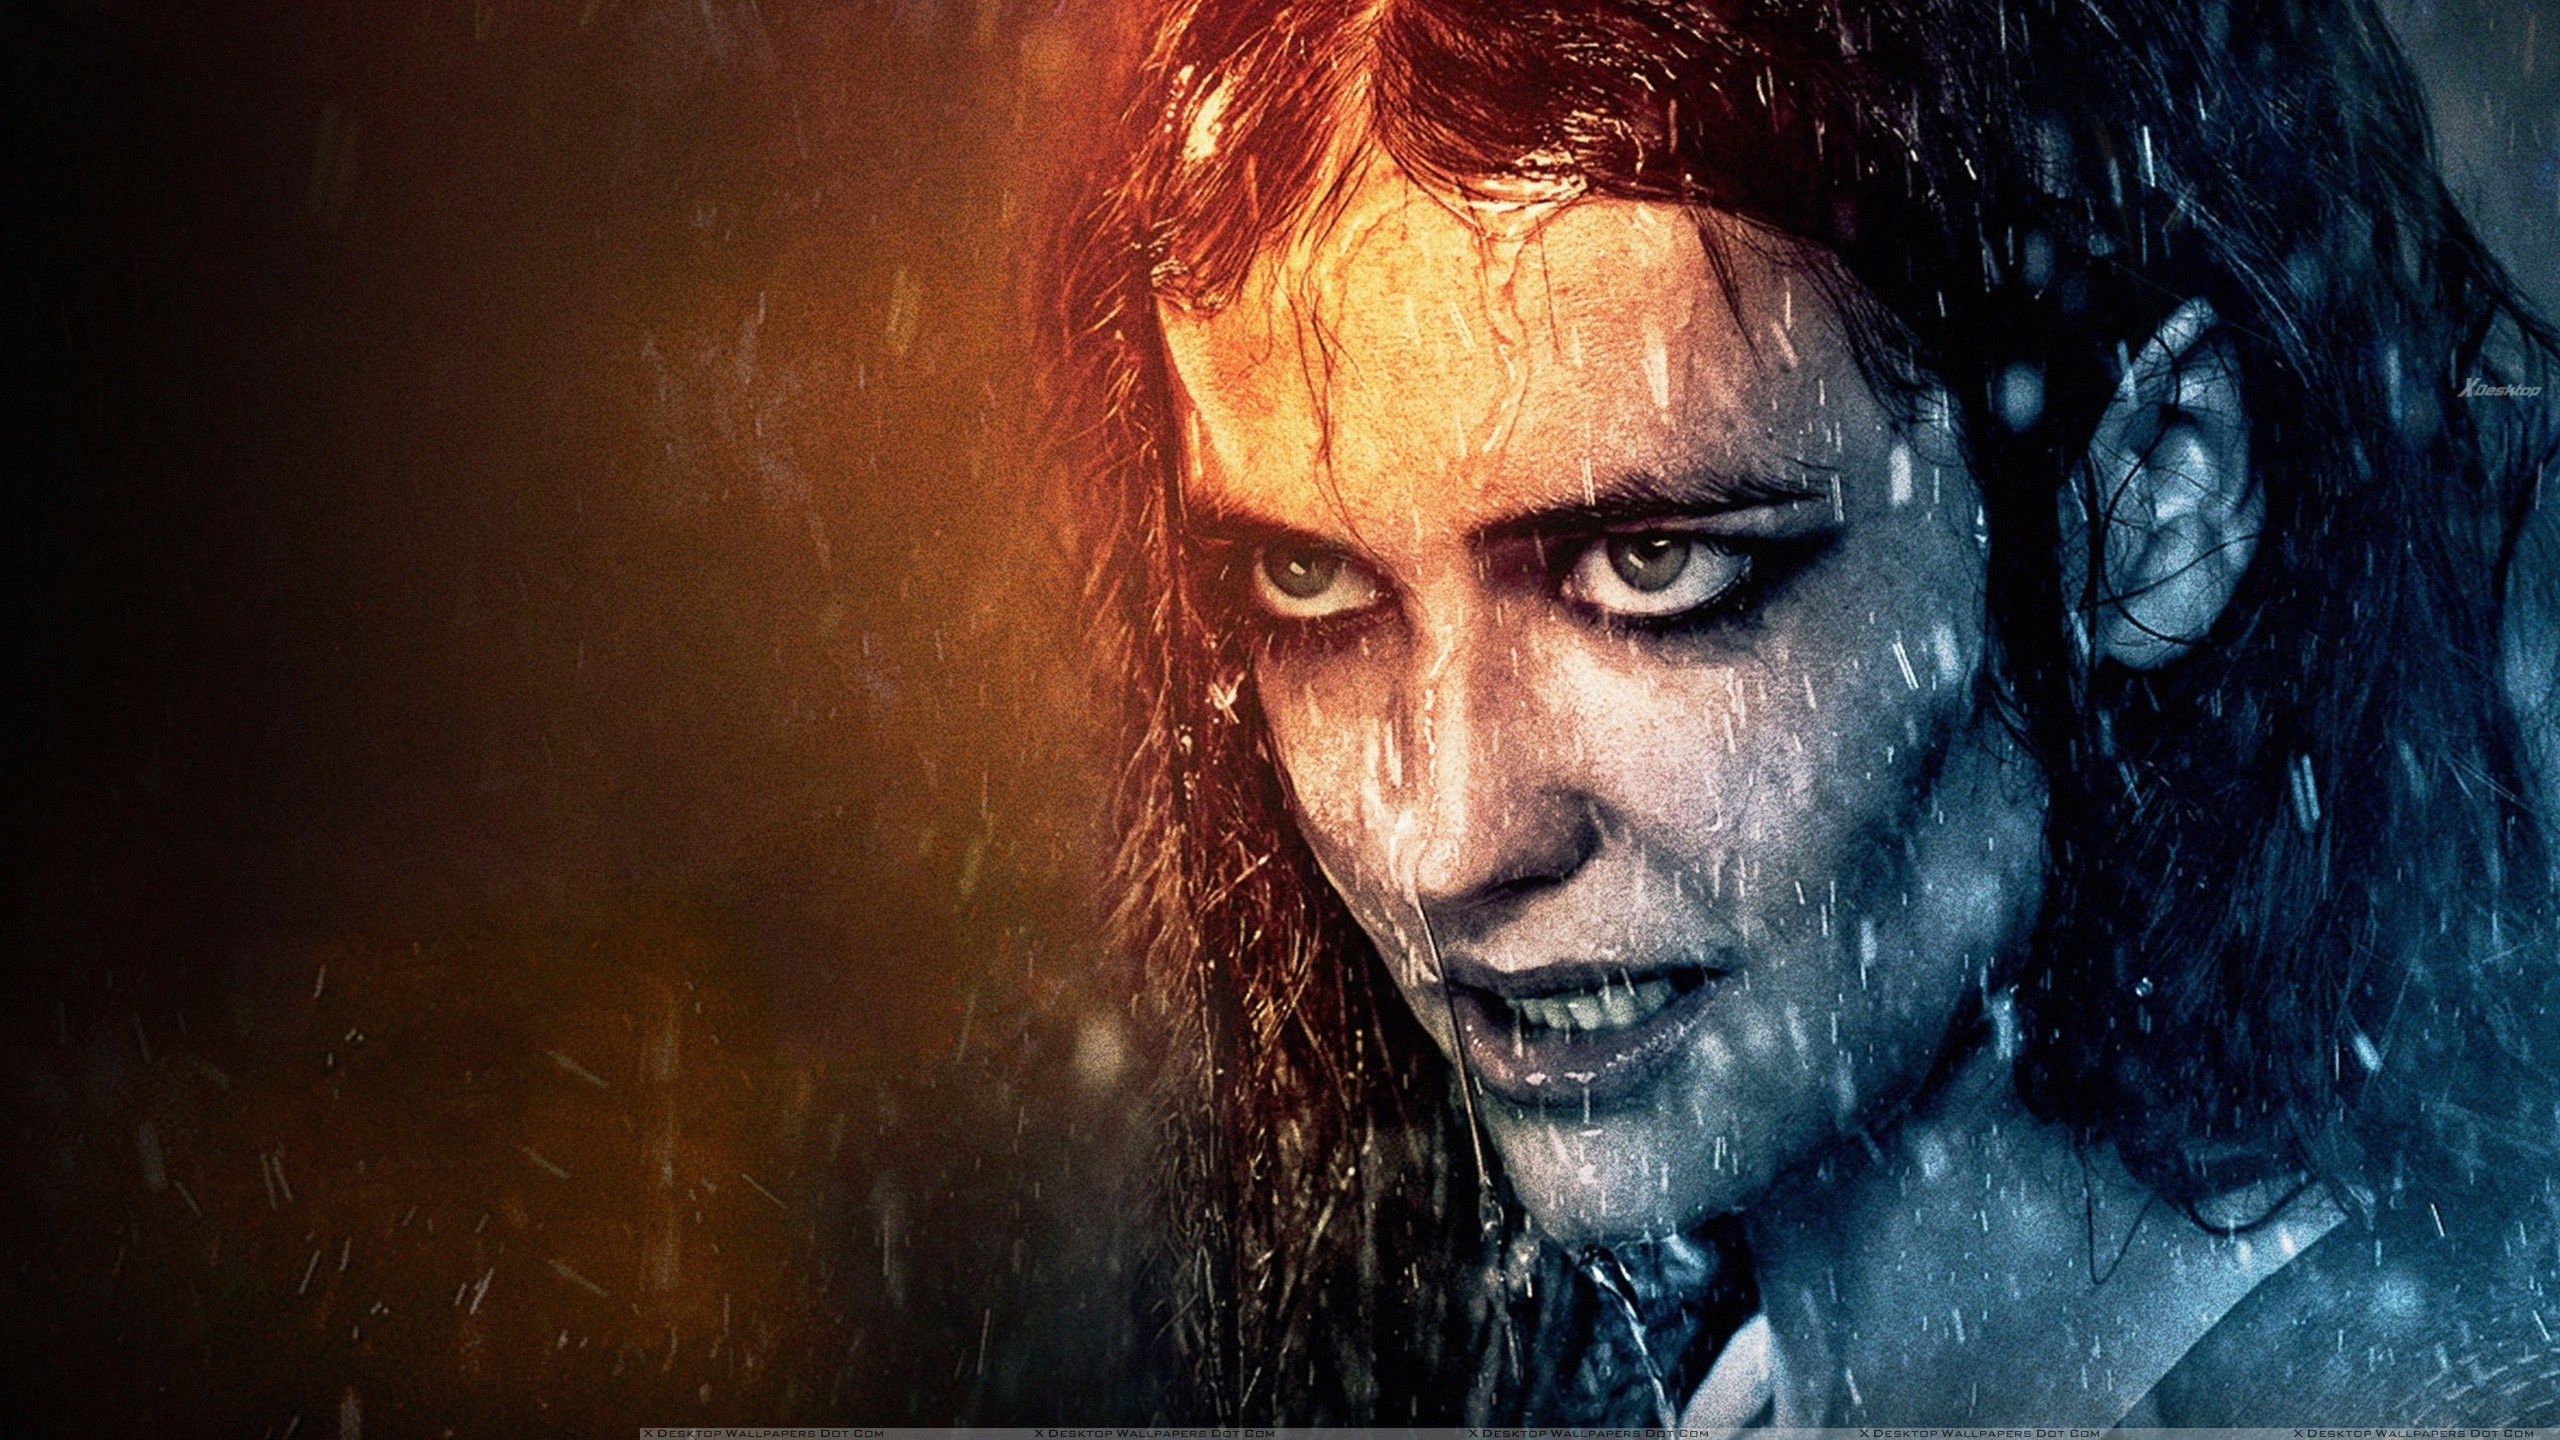 Eva Green Looking Angry In 300 Rise Of An Empire Wallpaper